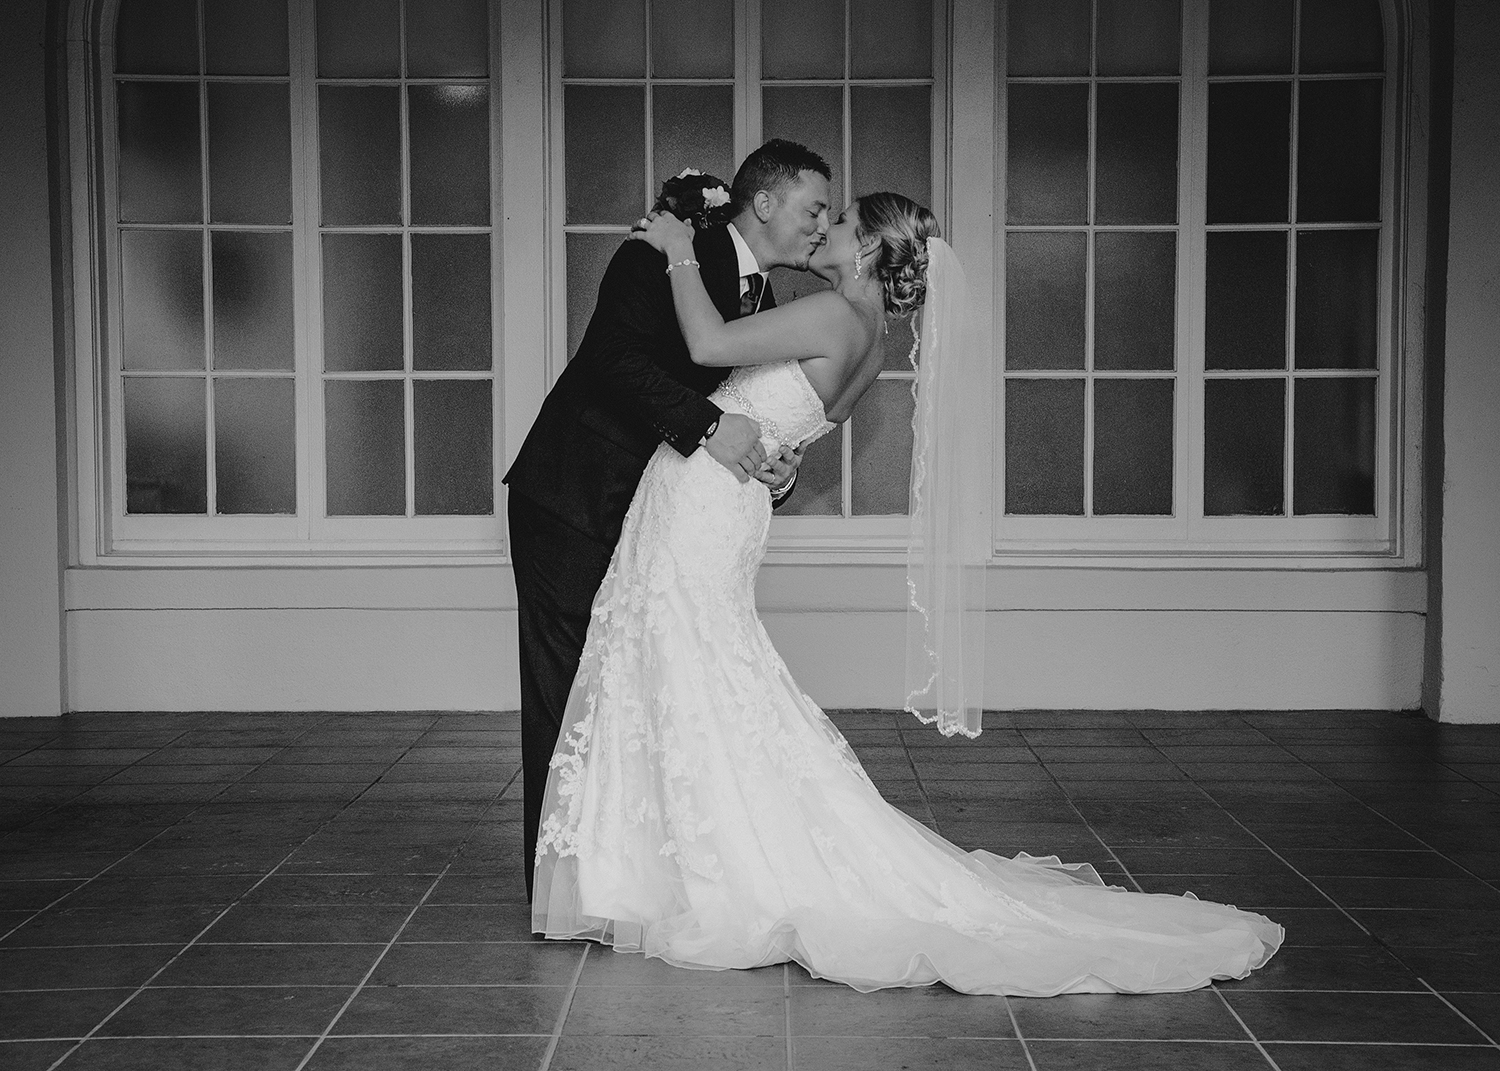 WeddingPortfolio_051.jpg